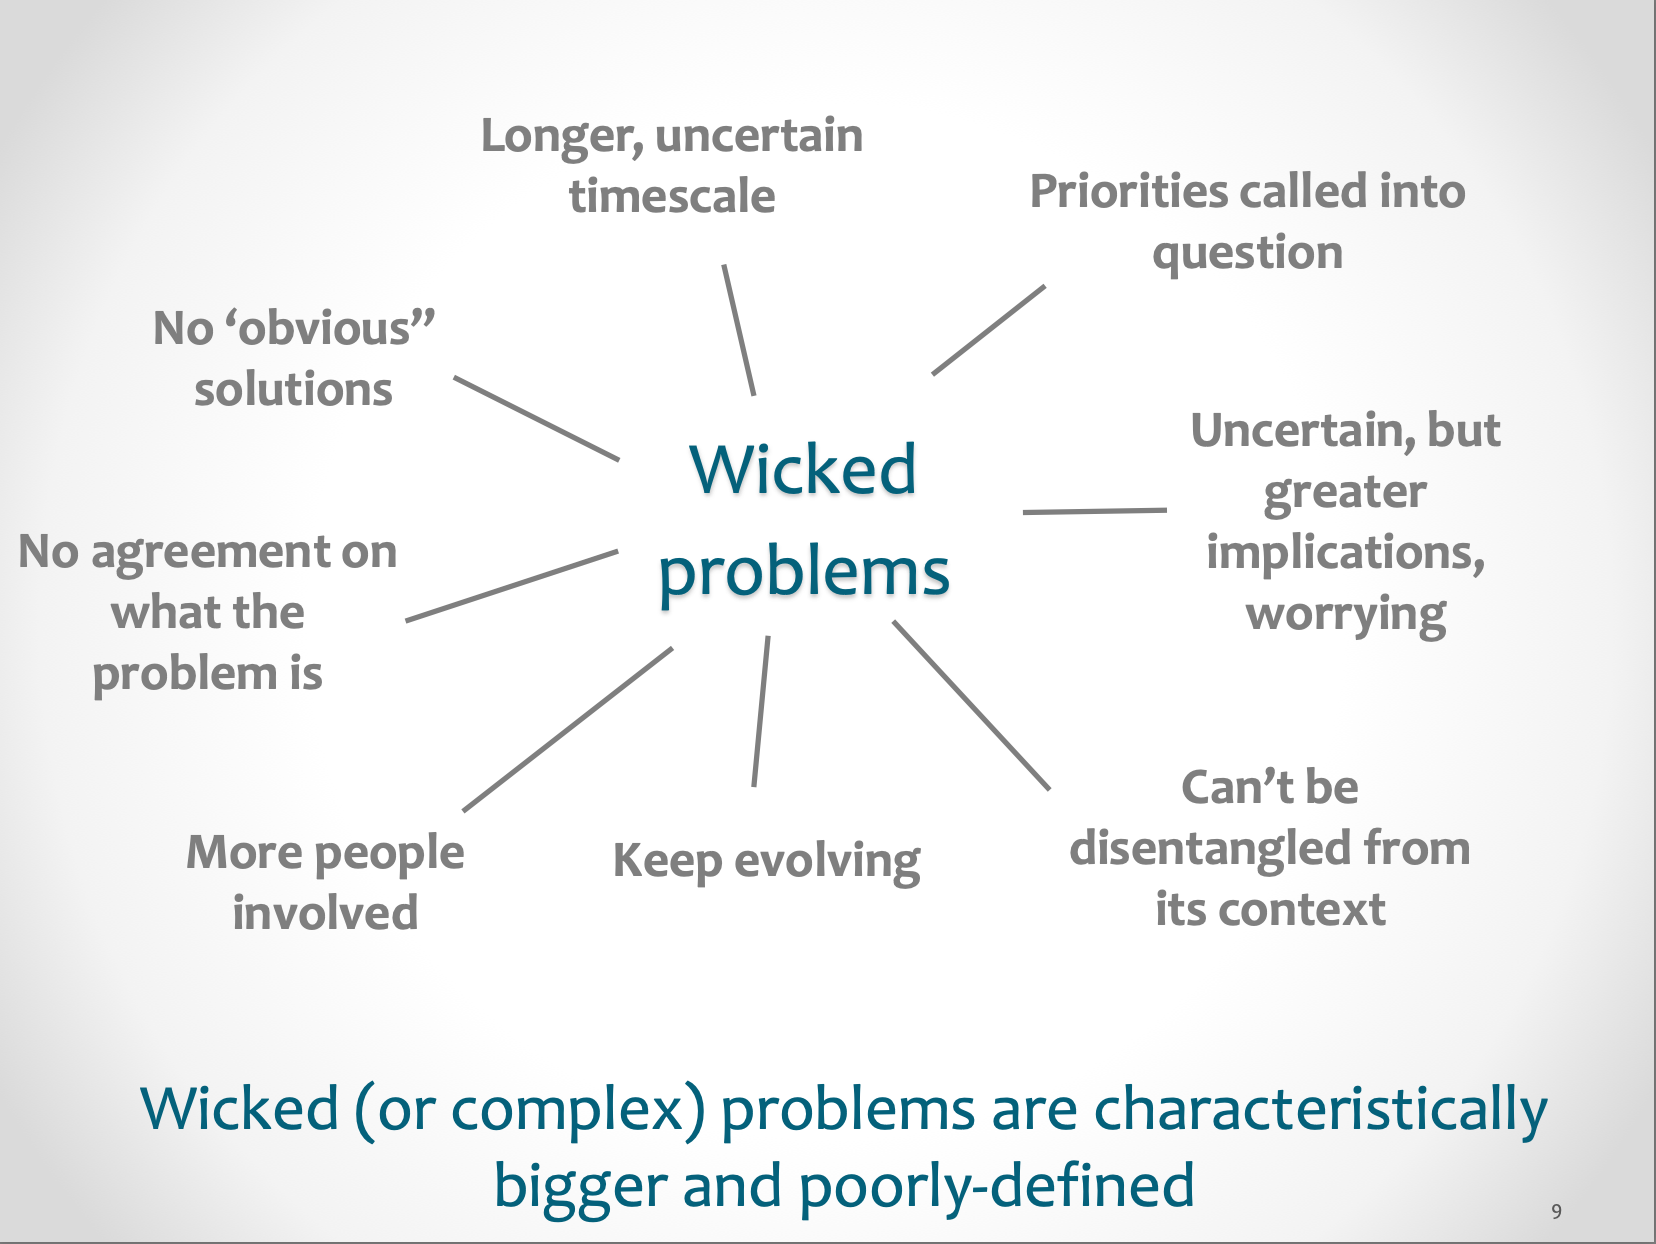 Wicked (or complex) problems are characteristically bigger and poorly defined